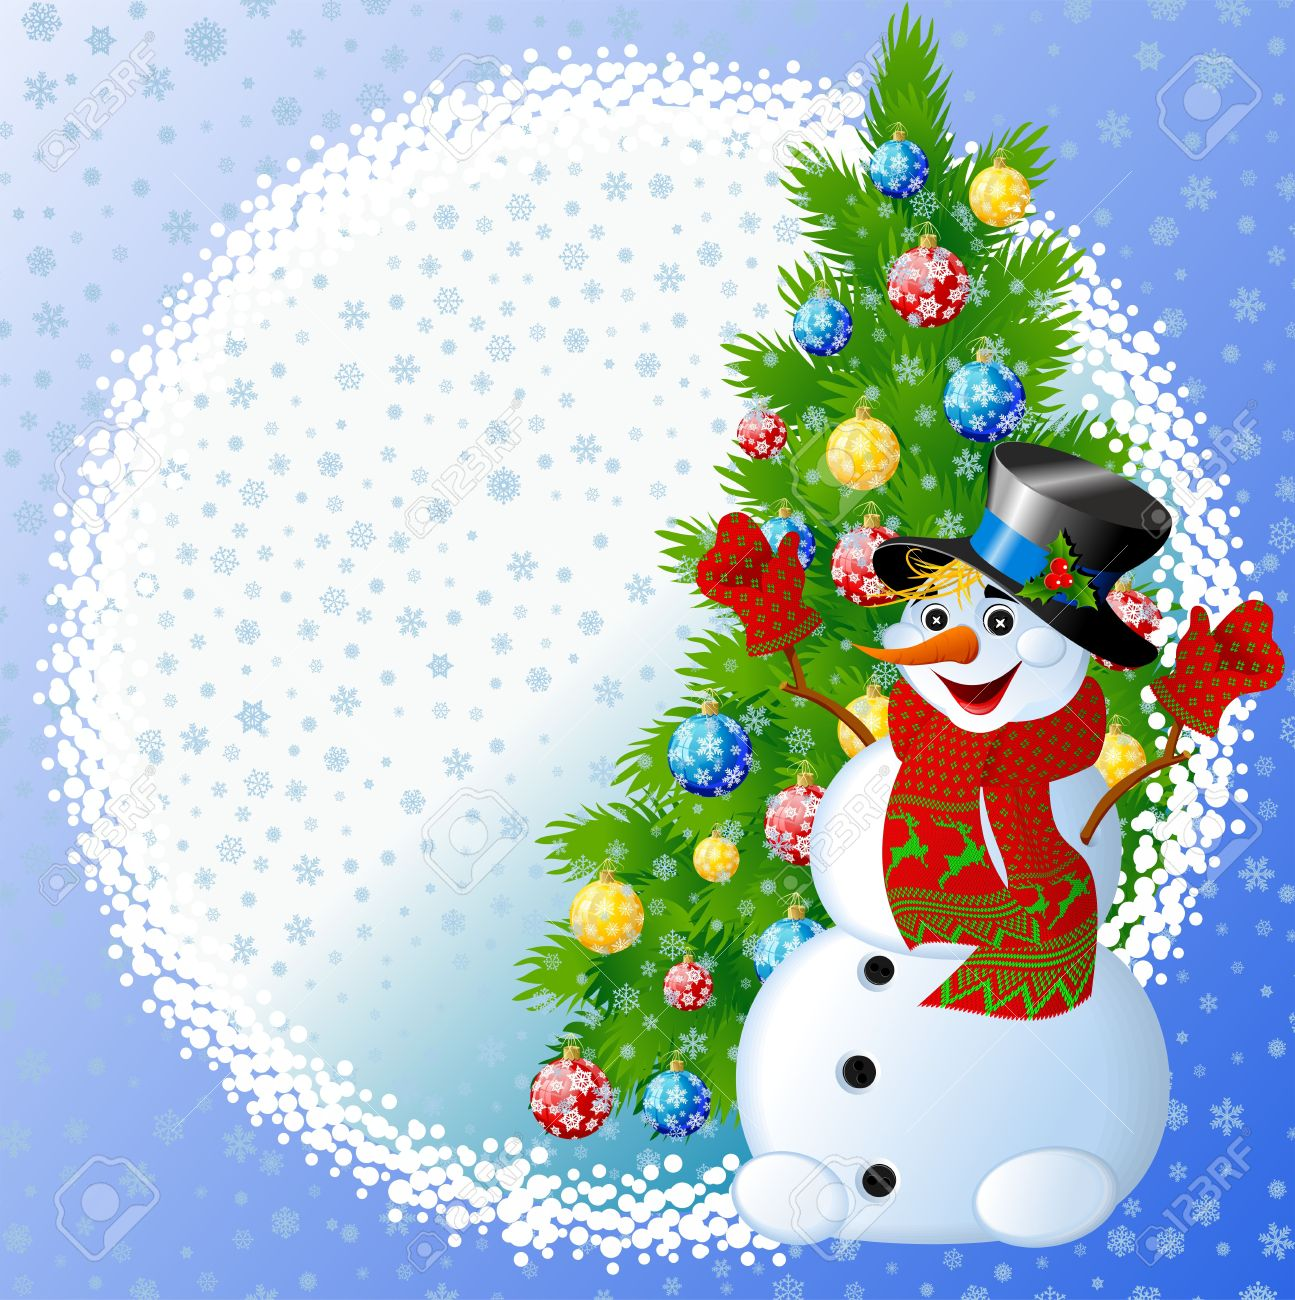 Snowman With Christmas Tree Stock Photo, Picture And Royalty Free ...